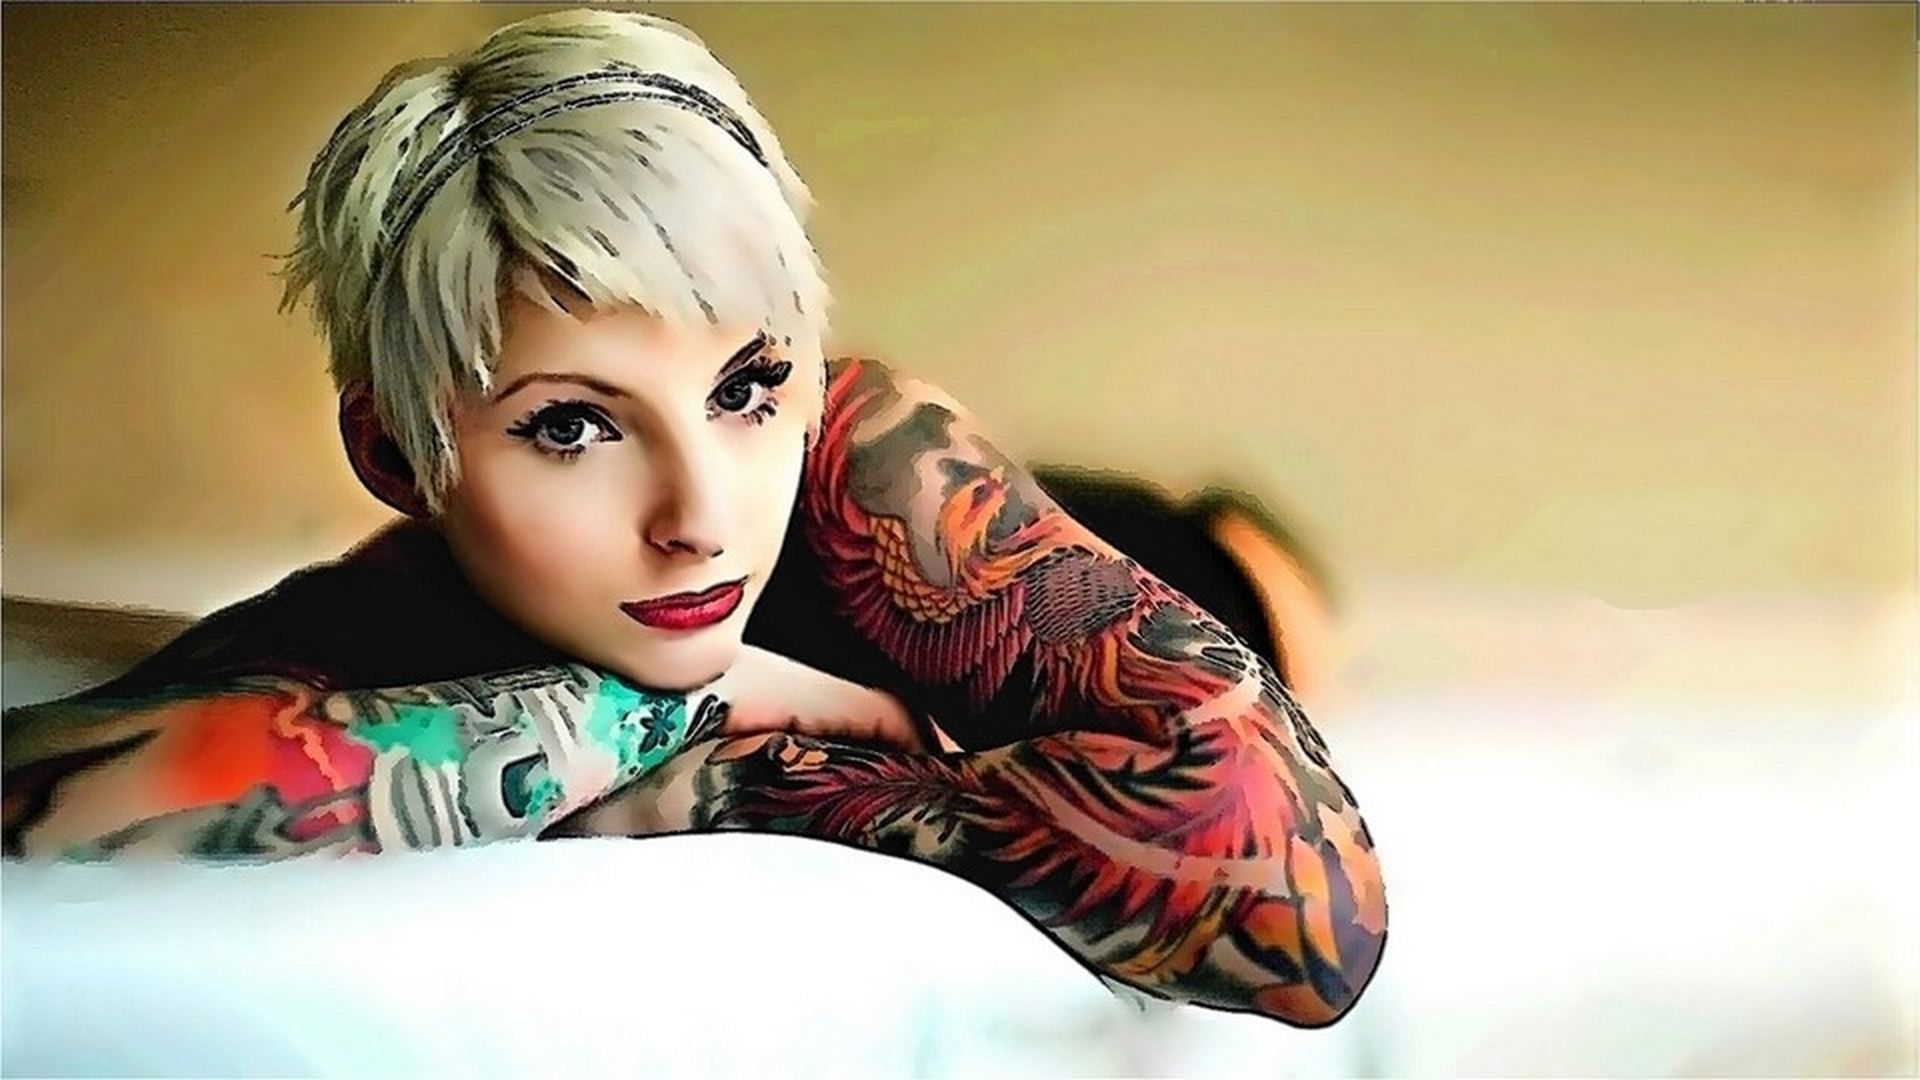 Tattoo Girl Wallpapers High Quality Download Free Girl Tattoos